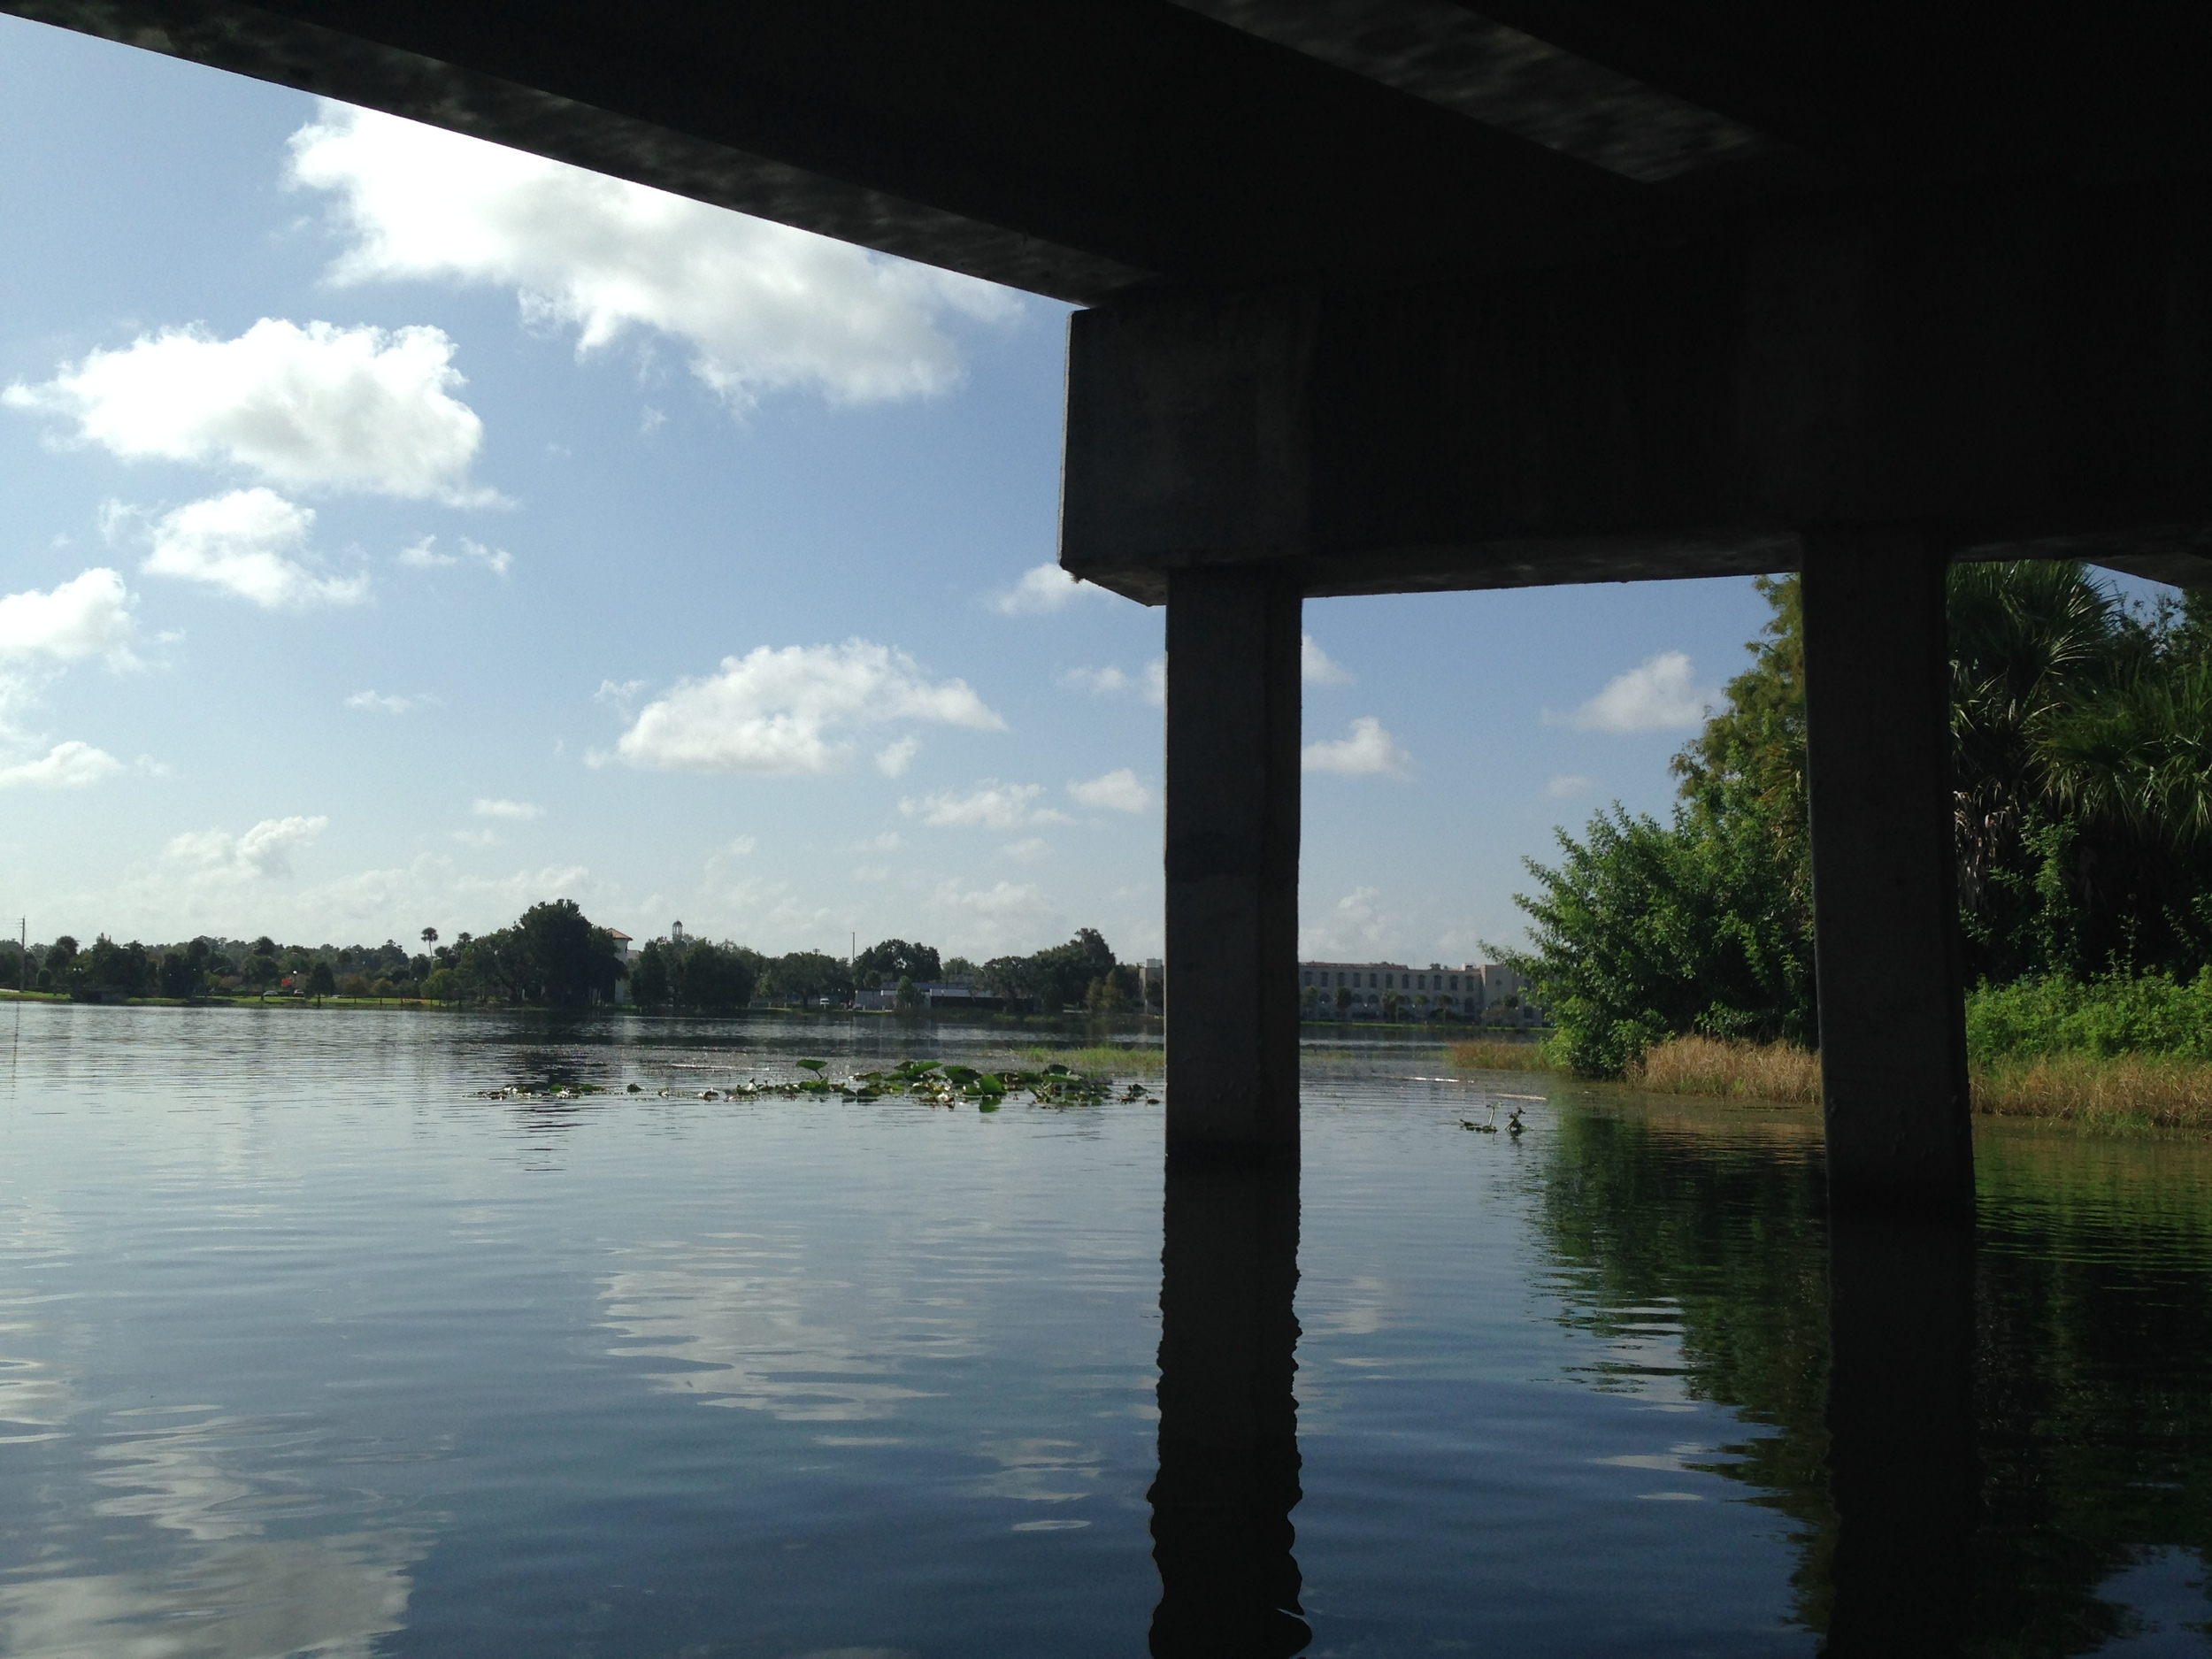 A fishing pier underneath I-4 linked by a walking path would be amazing.